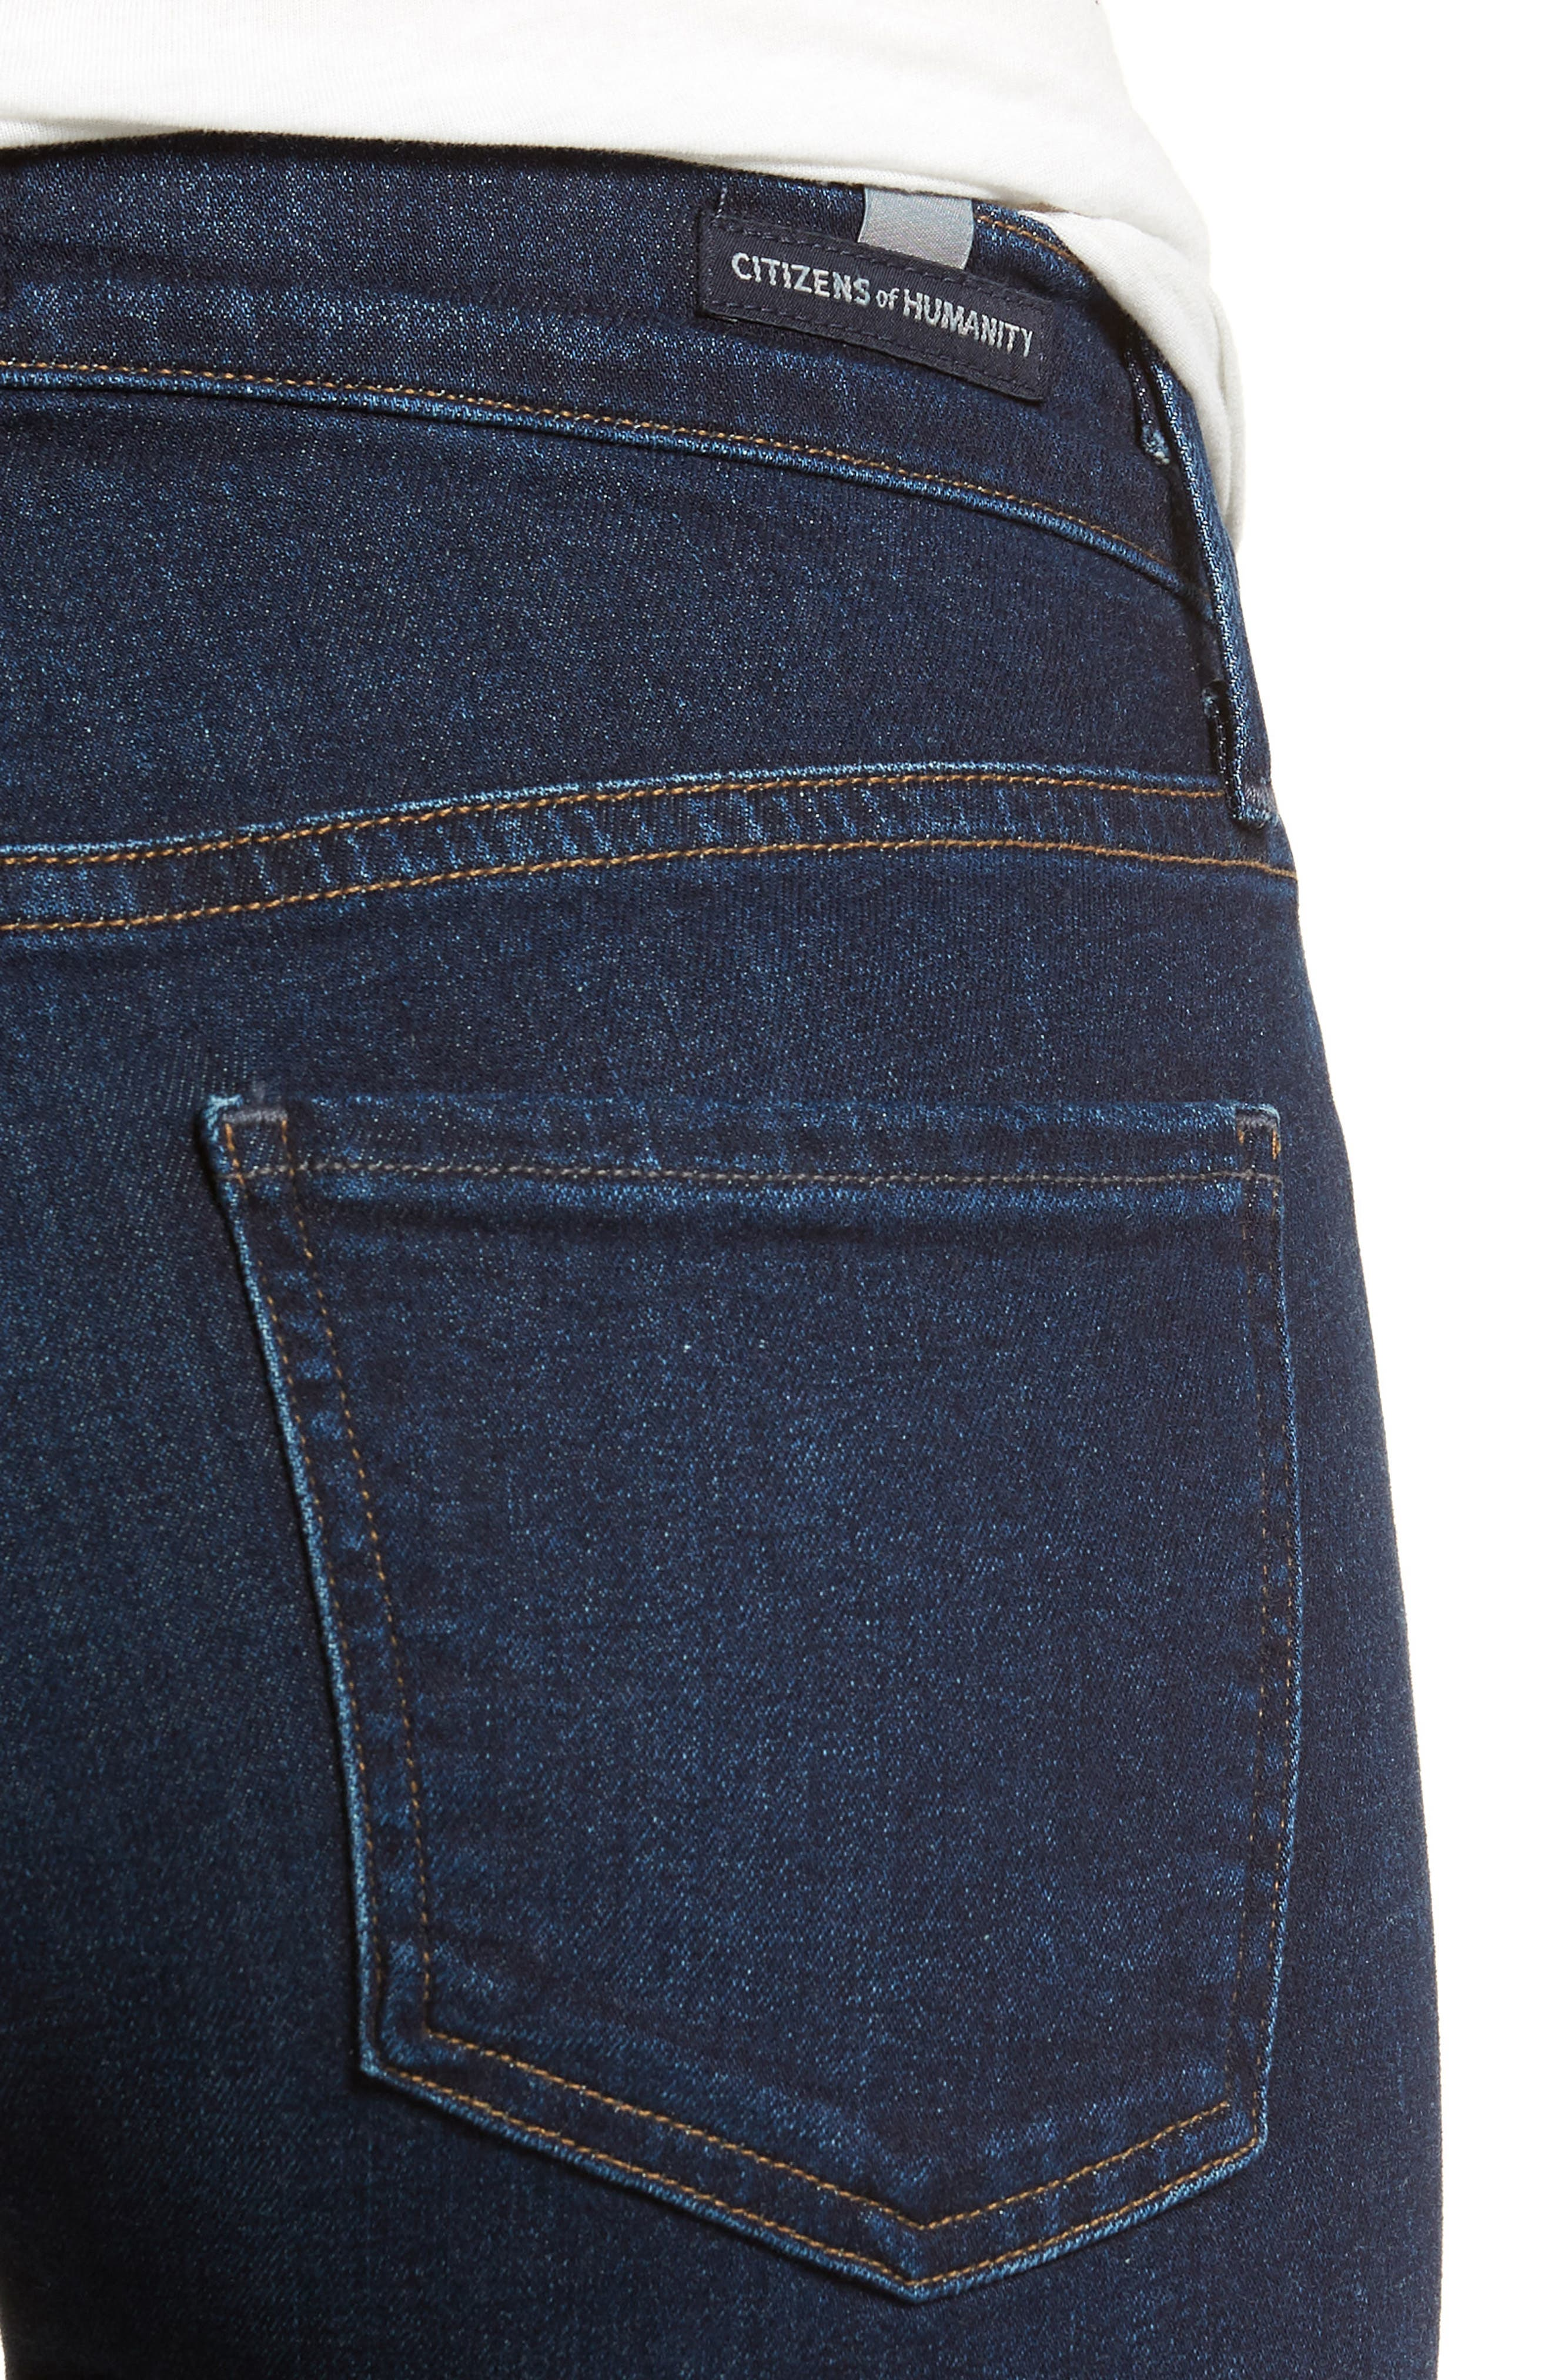 CITIZENS OF HUMANITY,                             Emannuelle Bootcut Jeans,                             Alternate thumbnail 4, color,                             GALAXY